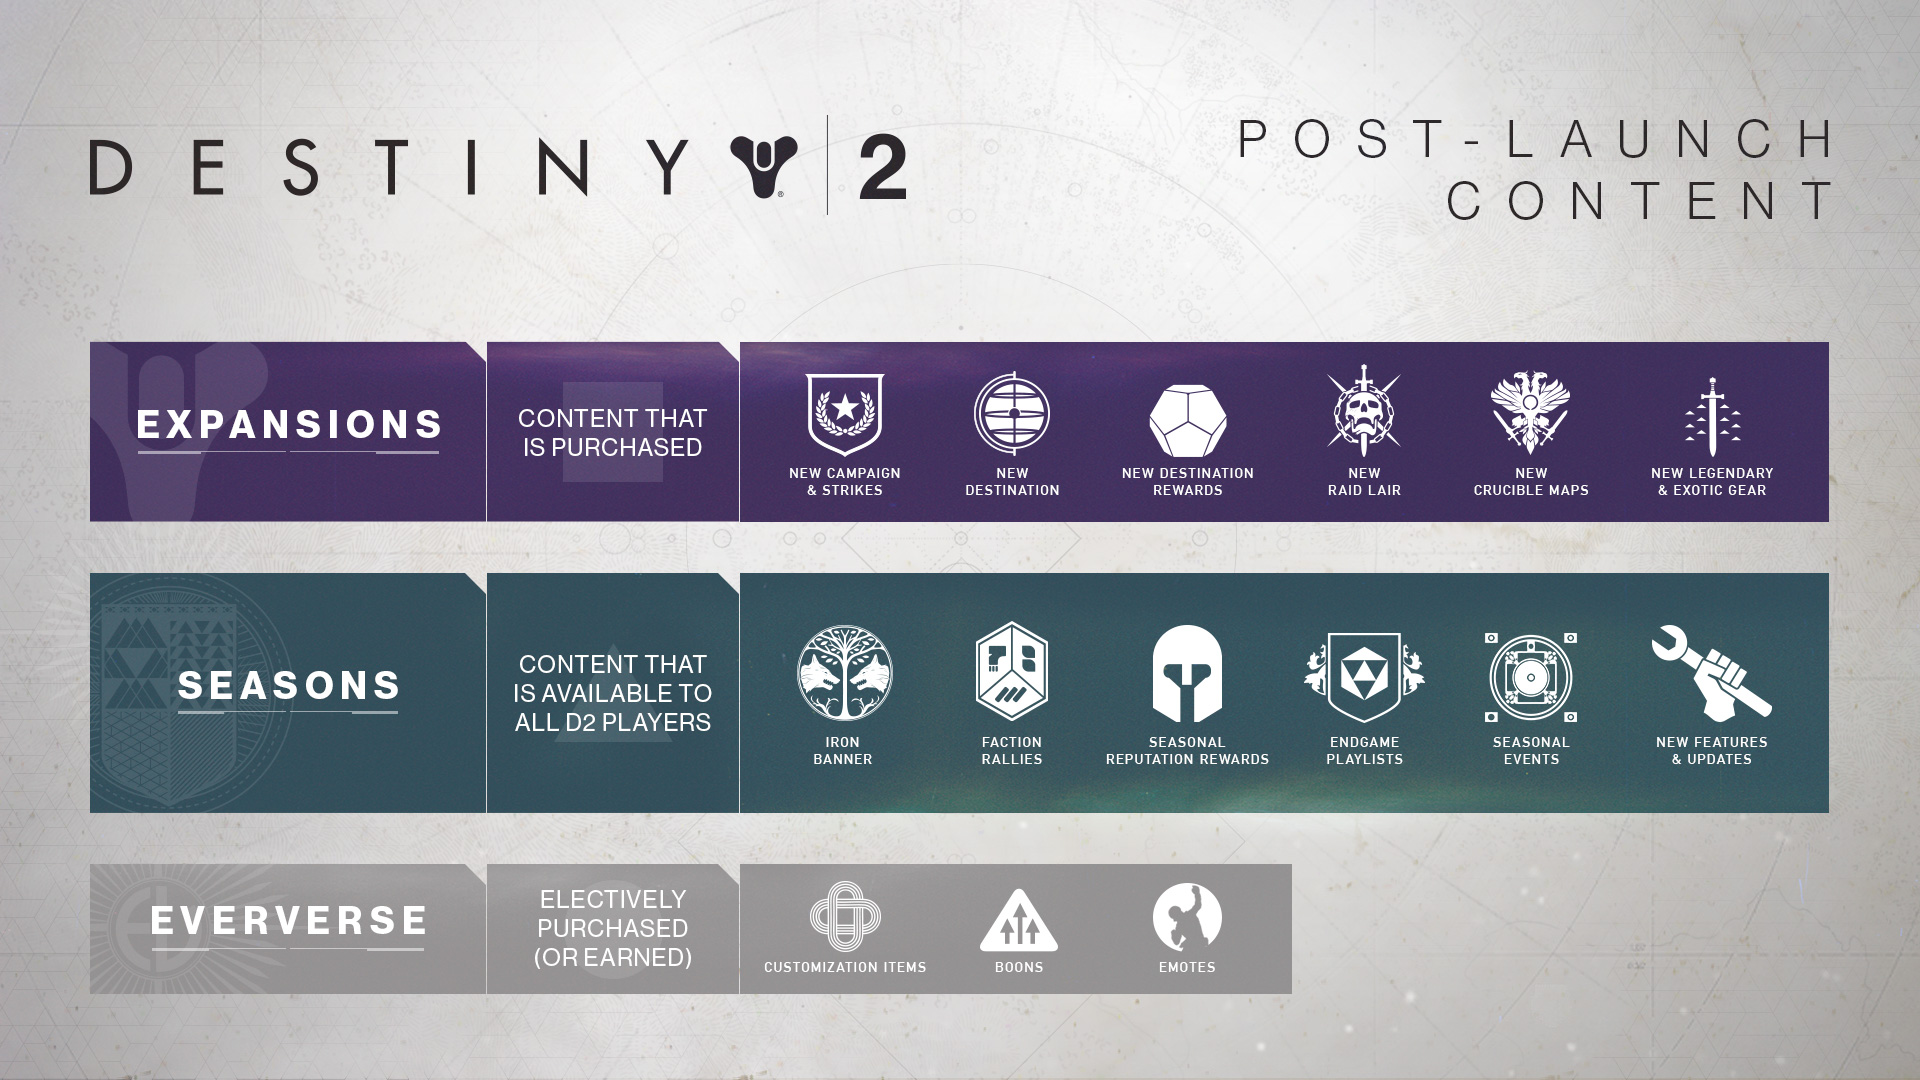 Bungie rethinks Destiny 2 microtransactions